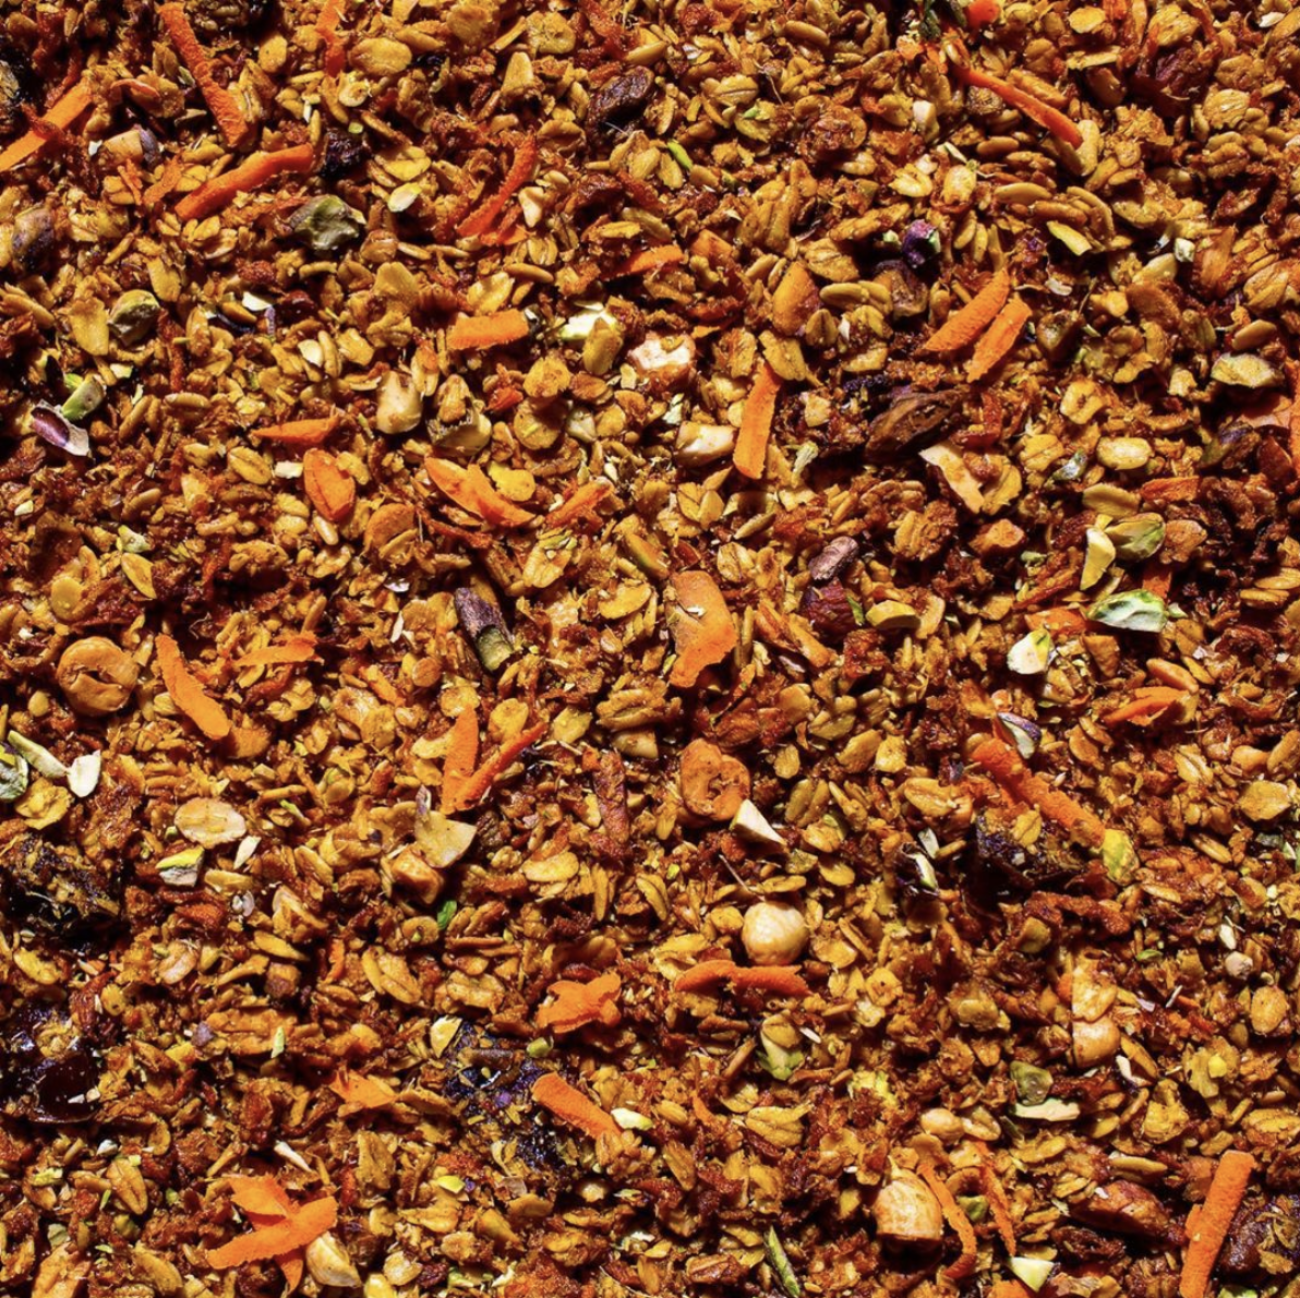 Decolonizing spices